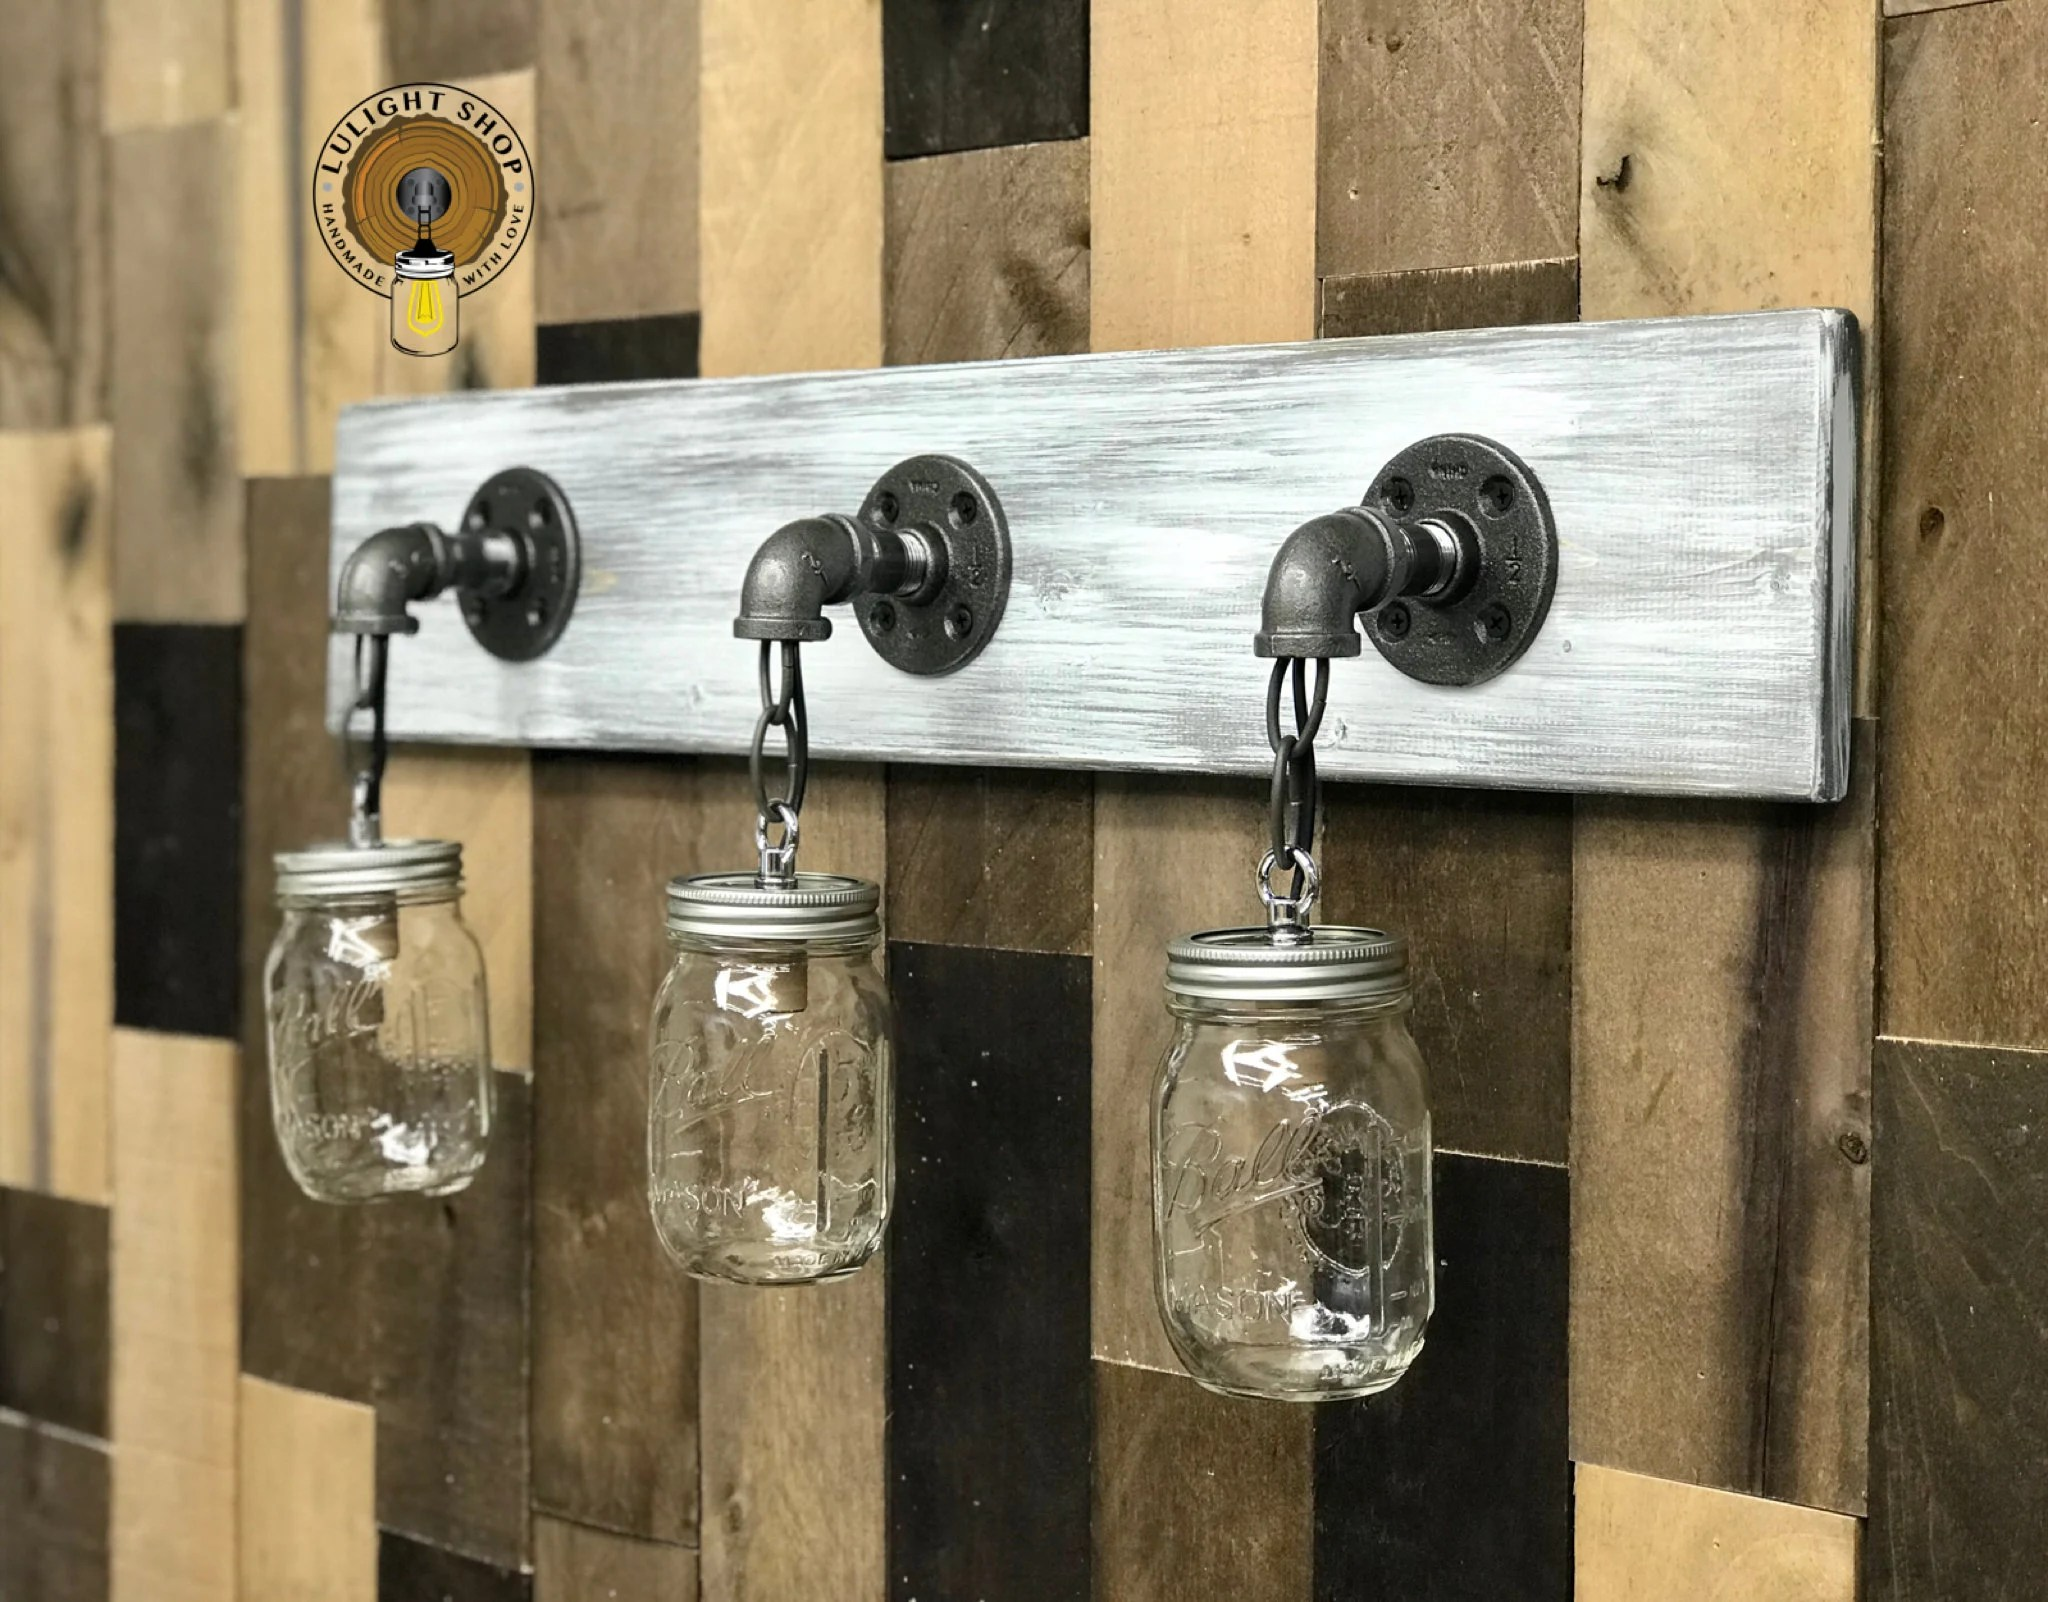 Mason Jar Bathroom Light Gray Whitewash Mason Jar Light Fixture Bathroom Decor Bathroom Light Industrial Bathroom Bathroom Hardware Vanity Lights Home Decor